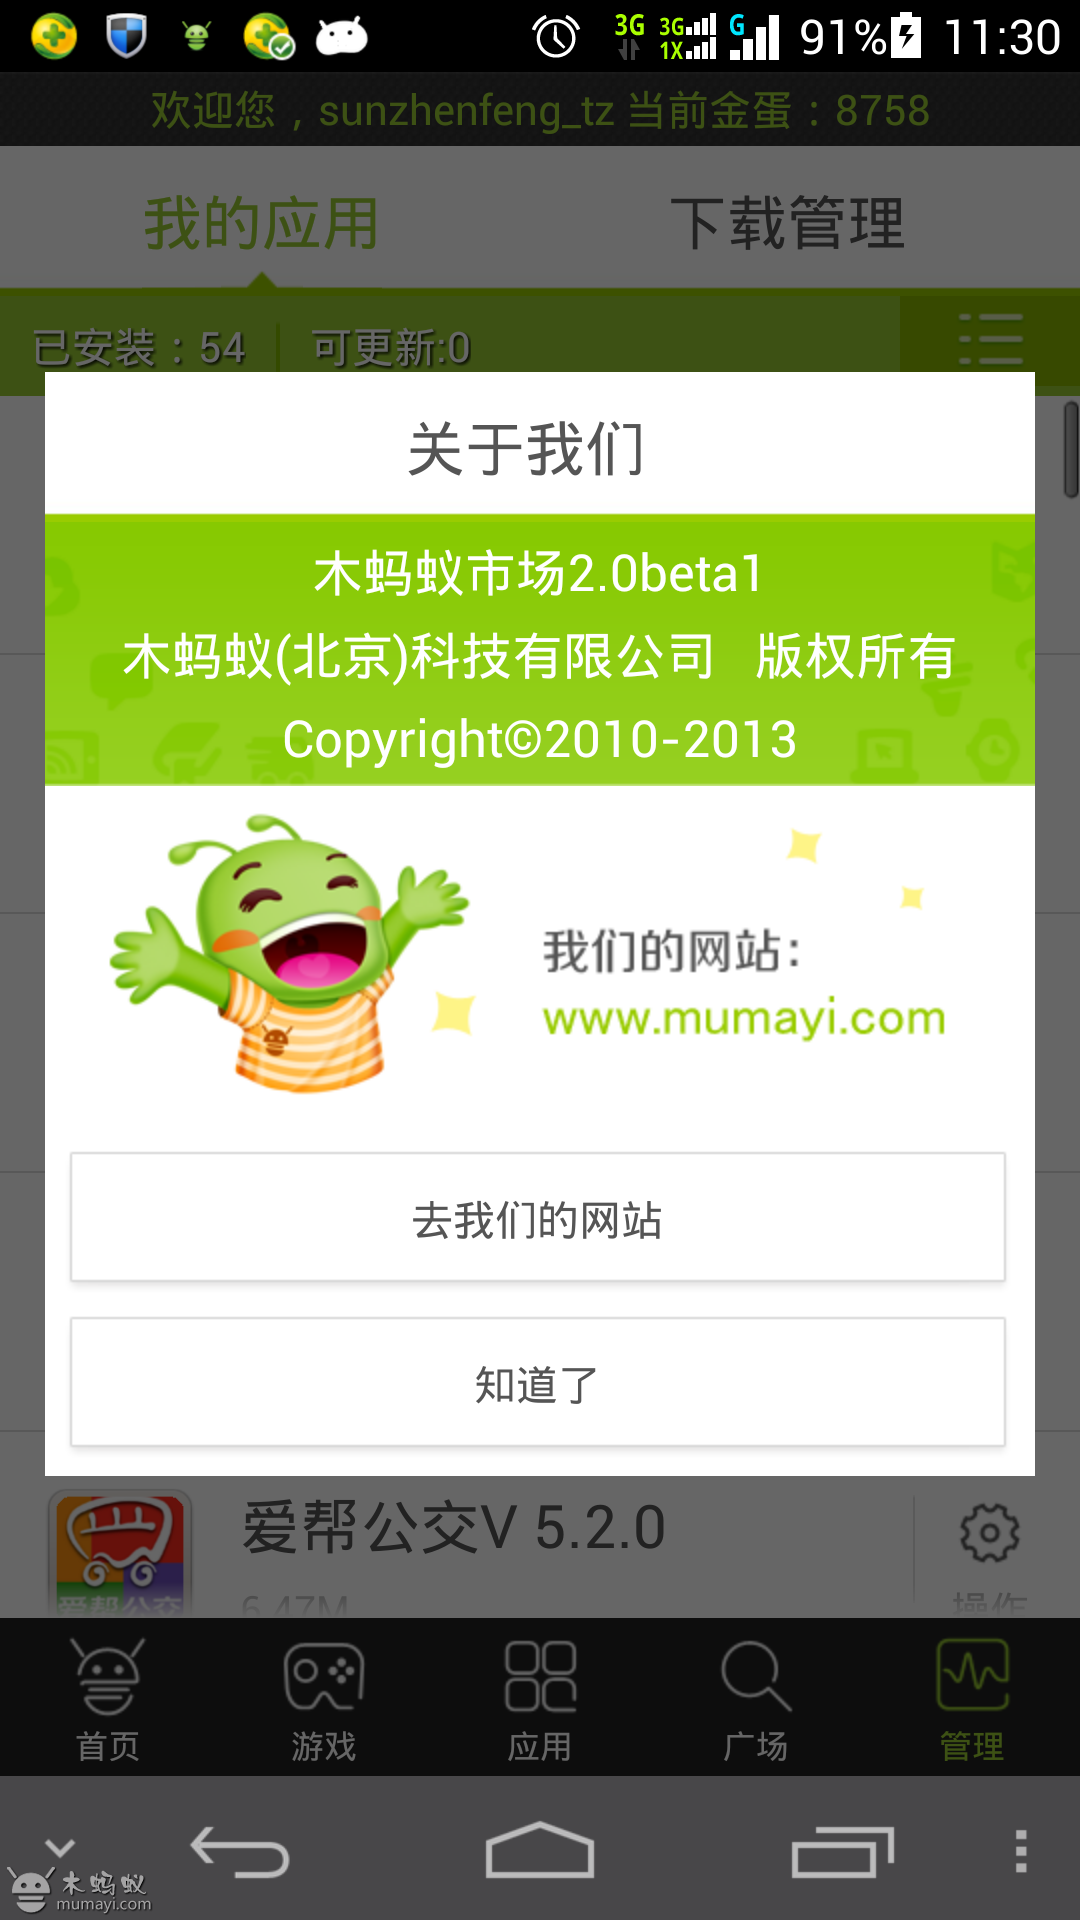 Screenshot_2013-12-05-11-30-41.png